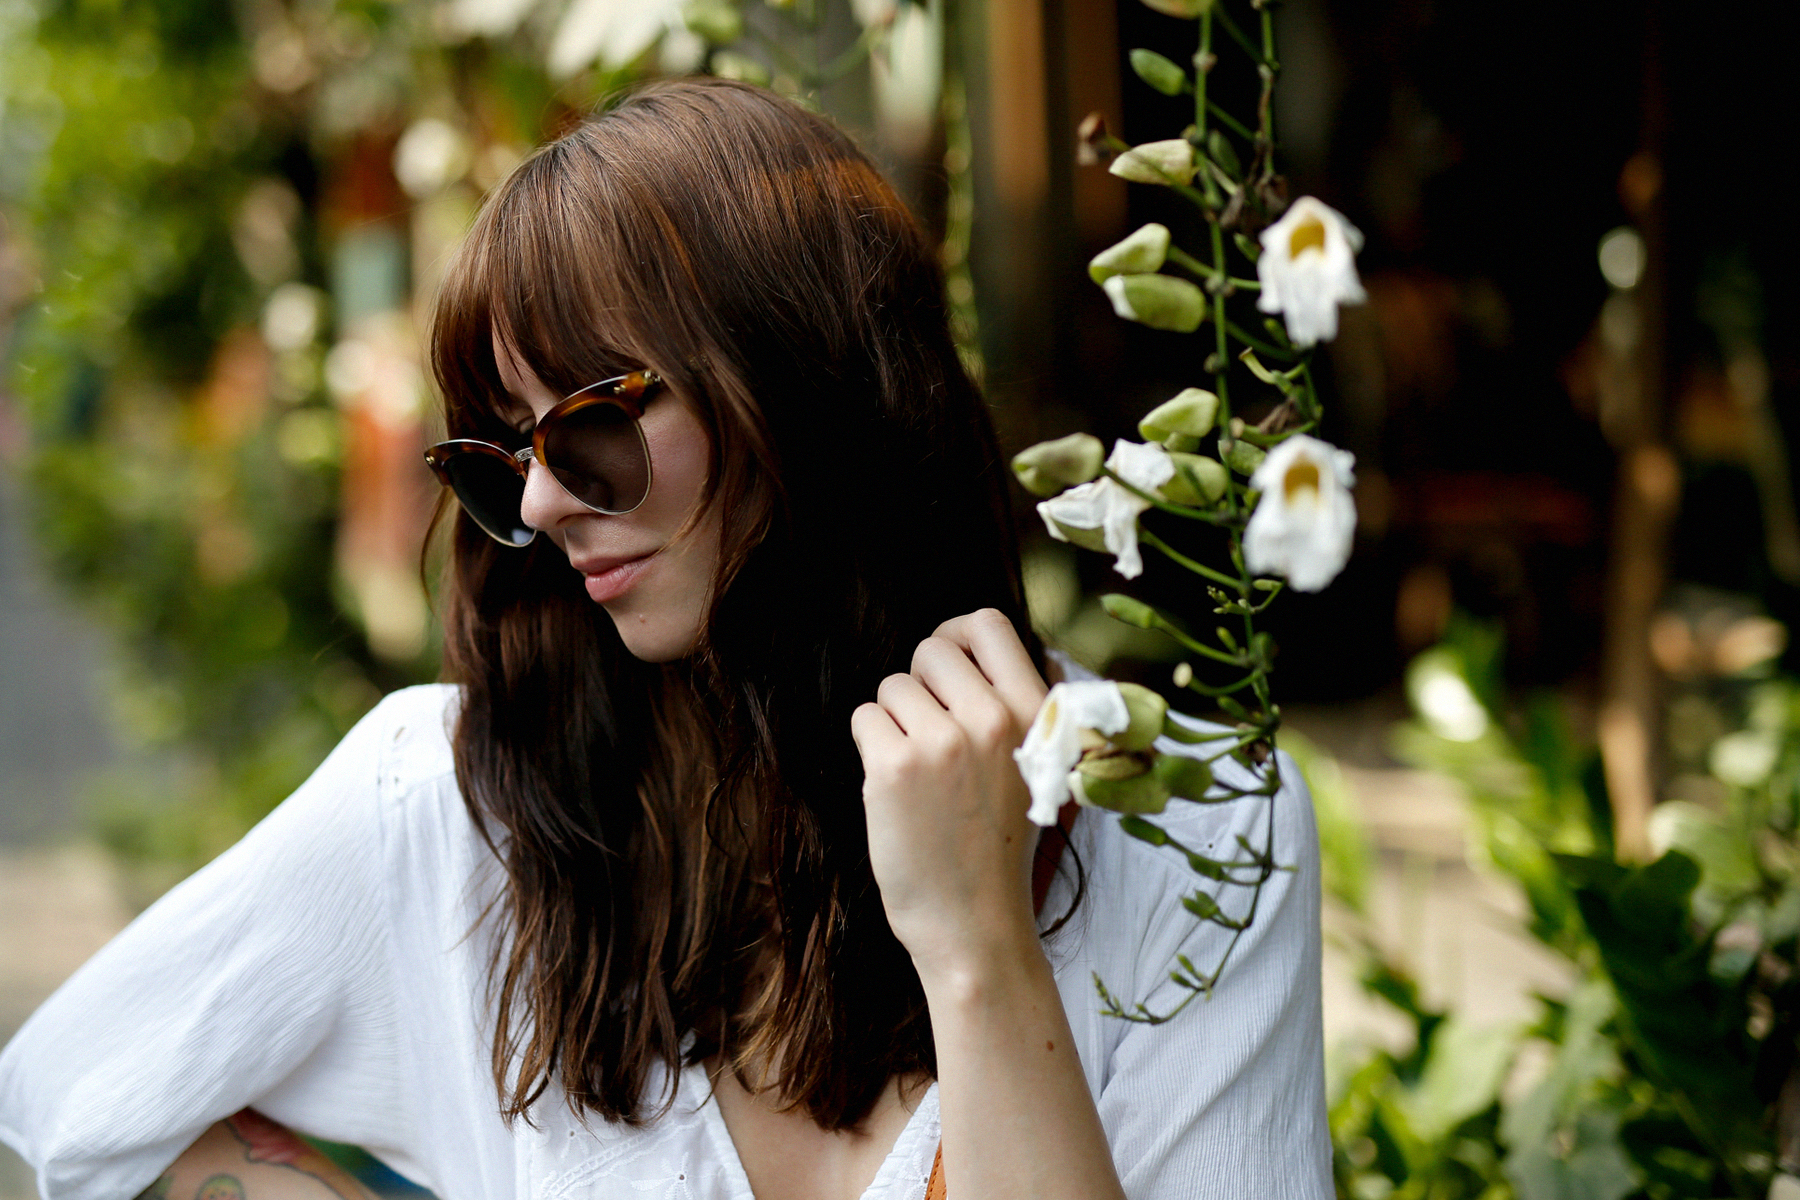 outfit bali denim shorts & other stories pull and bear blouse gucci sunglasses sacha shoes ubud styling style art market modeblogger travelblogger outfitblog ricarda schernus max bechmann 6